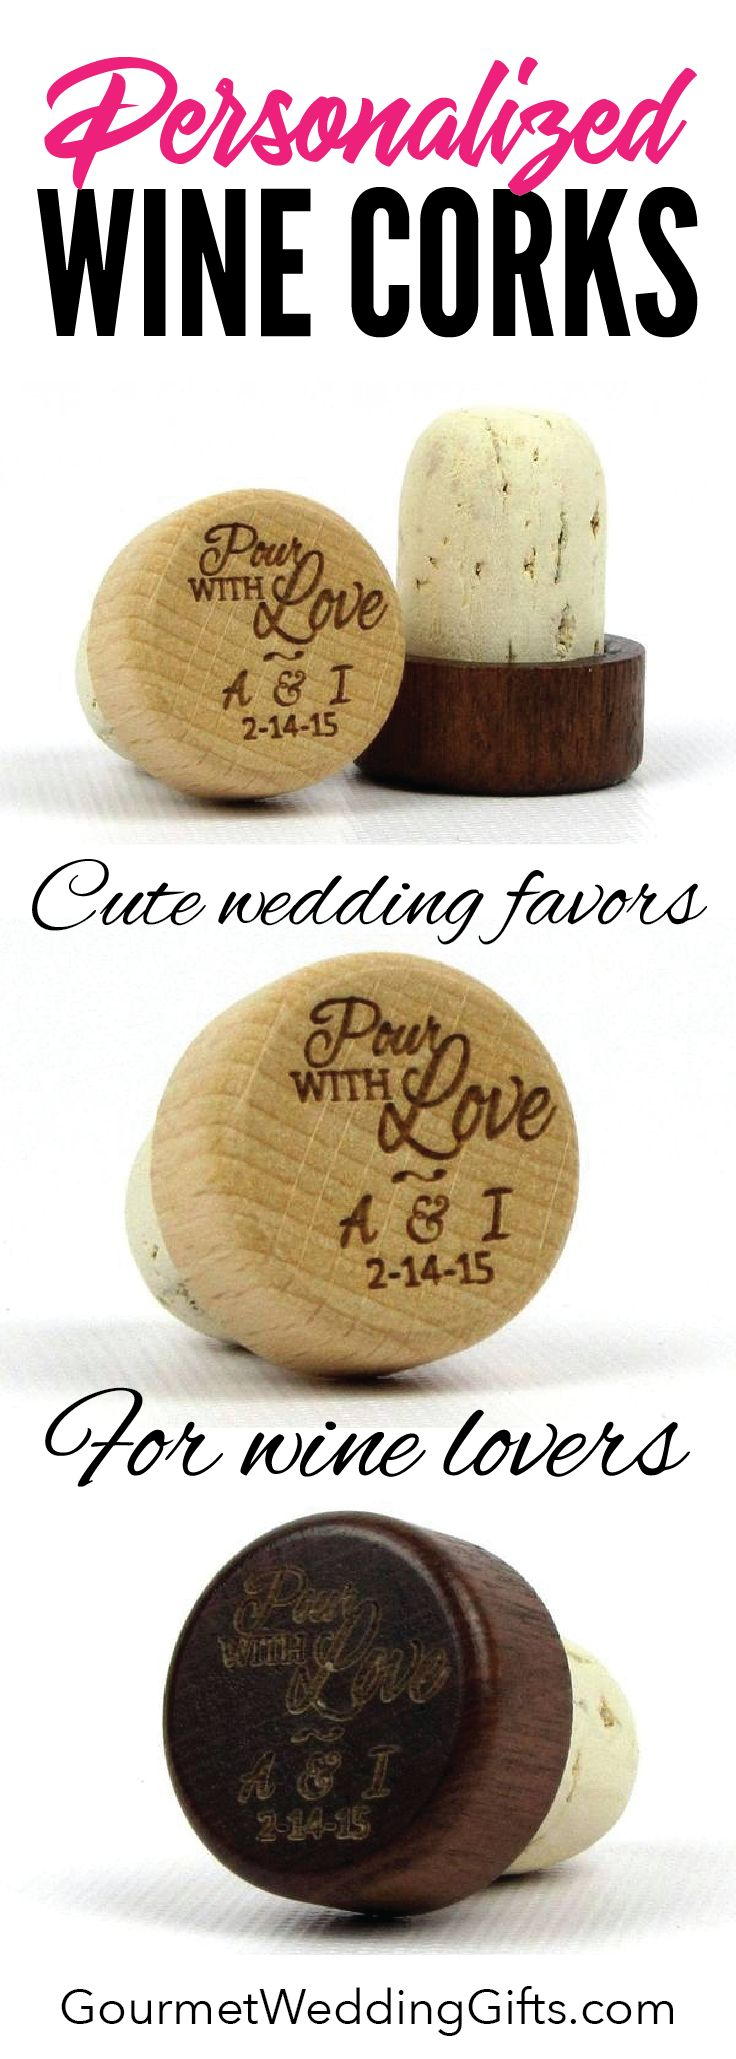 unique wedding favors |  wedding ideas | inexpensive cheap wedding gifts for guests | bridal shower gifts | custom gifts | wine gifts | cork stoppers #weddingideas